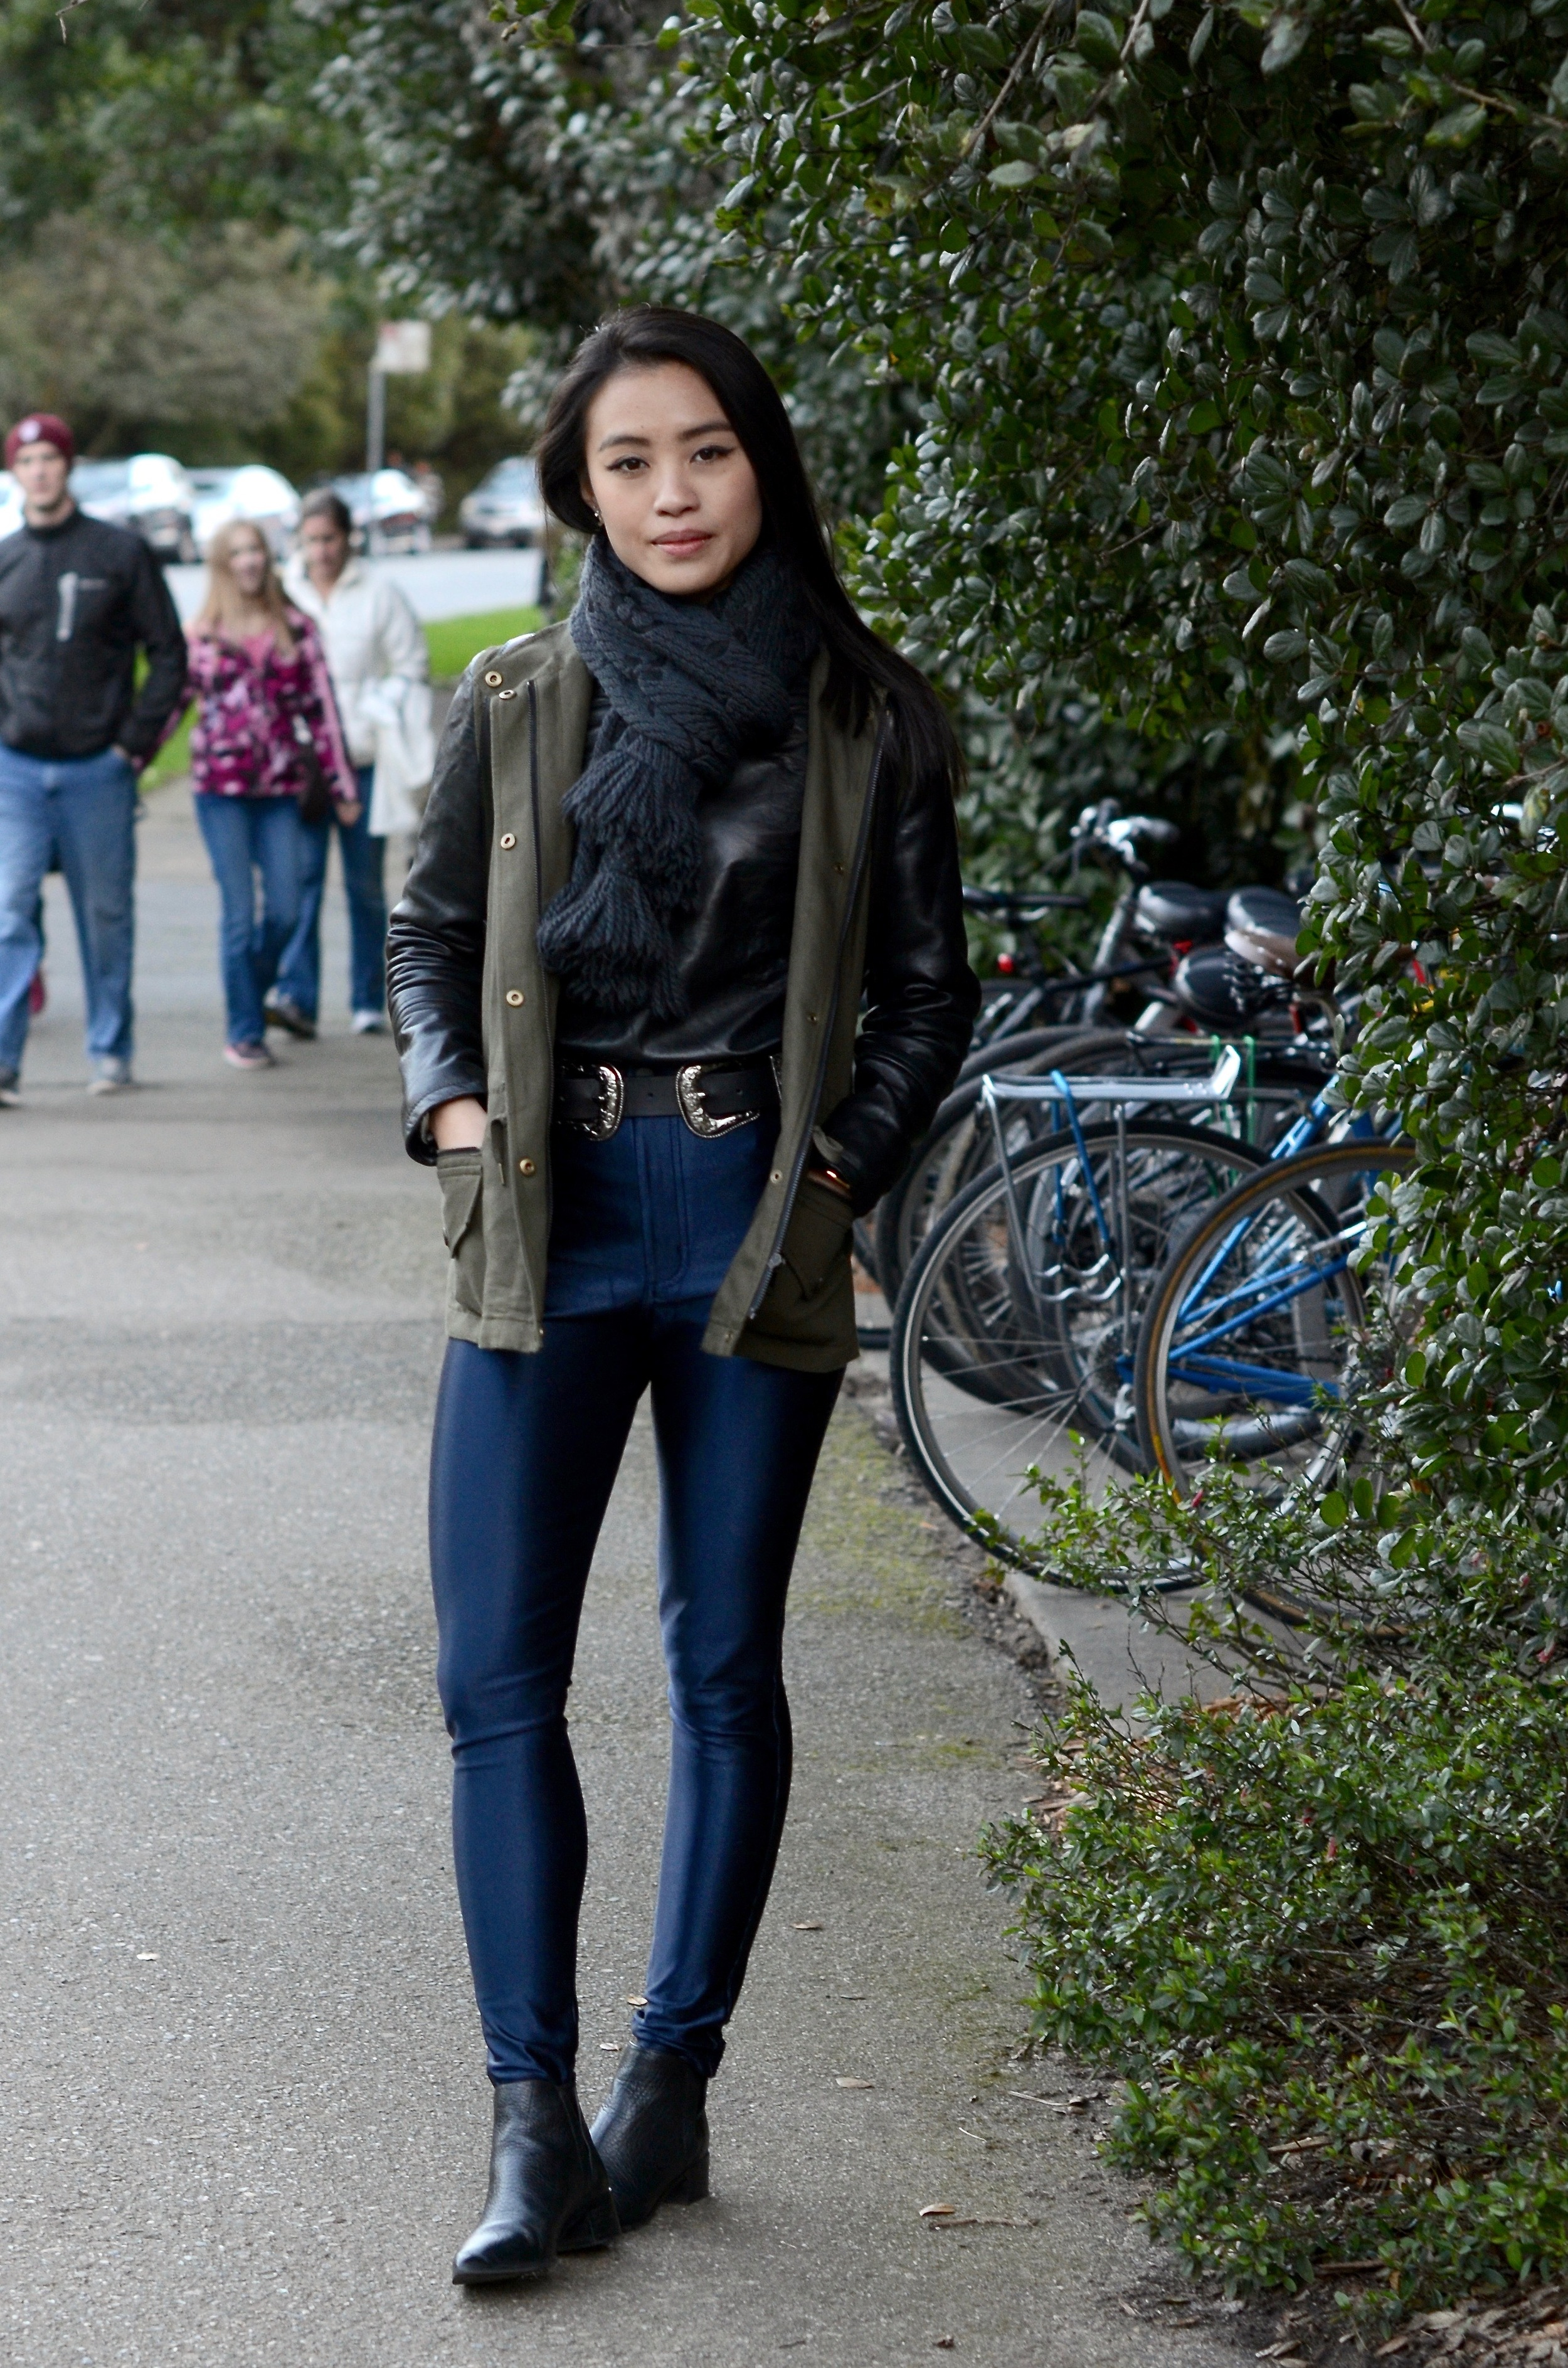 Just Goh With It-Outfits-club-monaco-parka-american-apparel-disco-metallic-pants-b-low-the-belt-all-saints-over-the-knee-boots-louis-vuitton-scarf-4.jpg